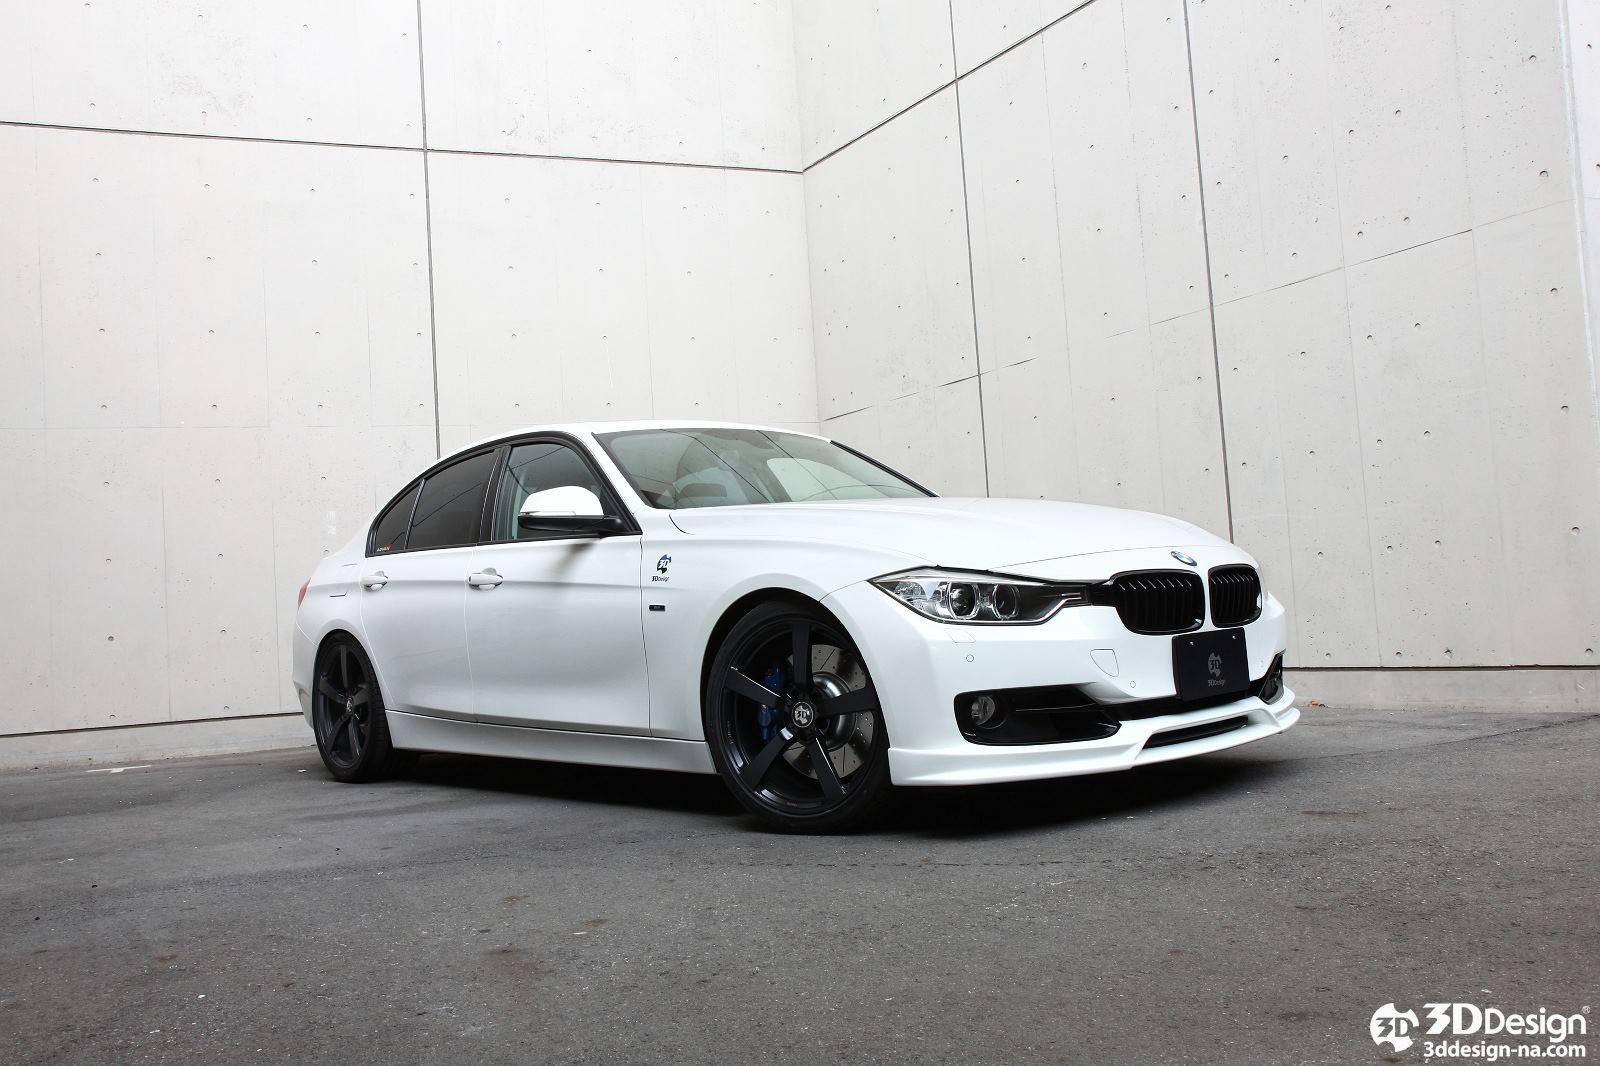 3d design offers aero kit for f30 bmw 3 series. Black Bedroom Furniture Sets. Home Design Ideas